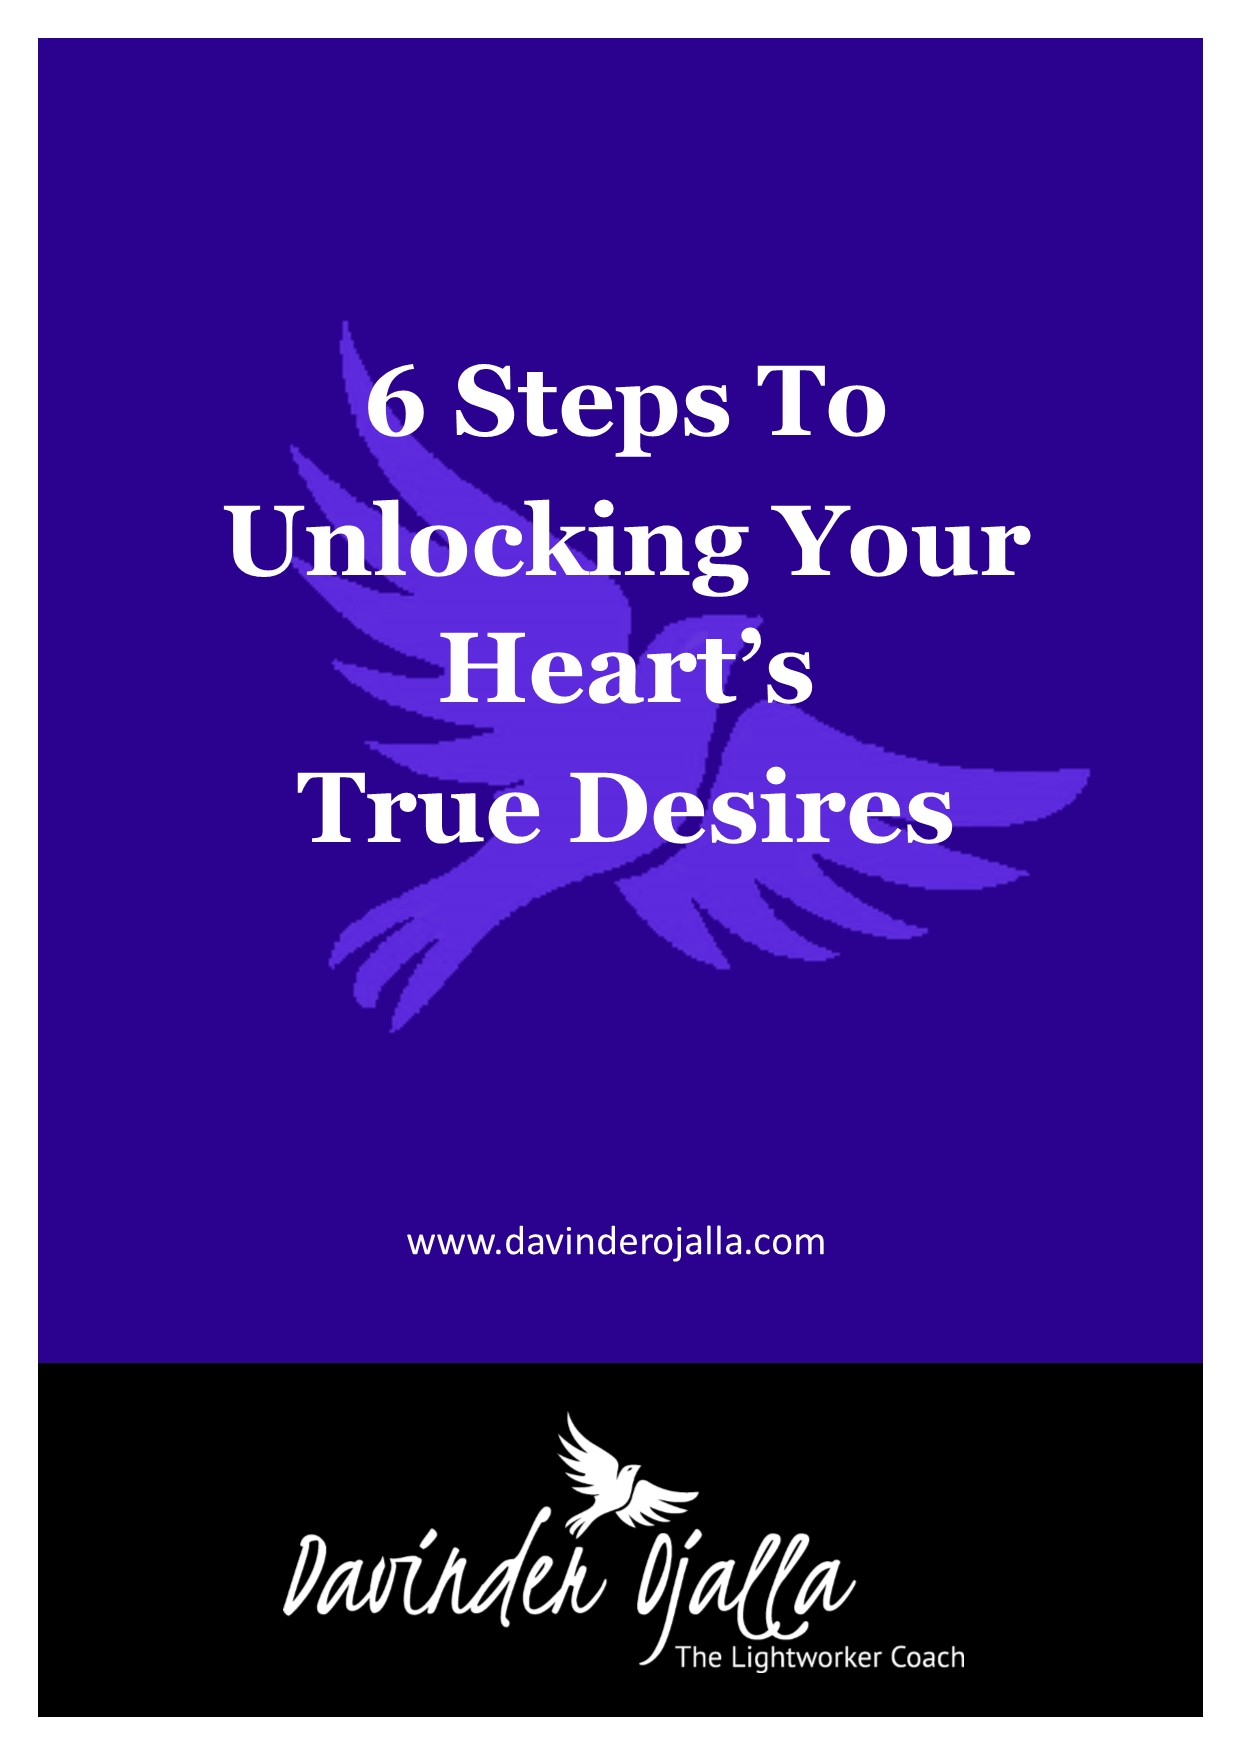 6 Steps To Unlocking Your Hearts True Desire